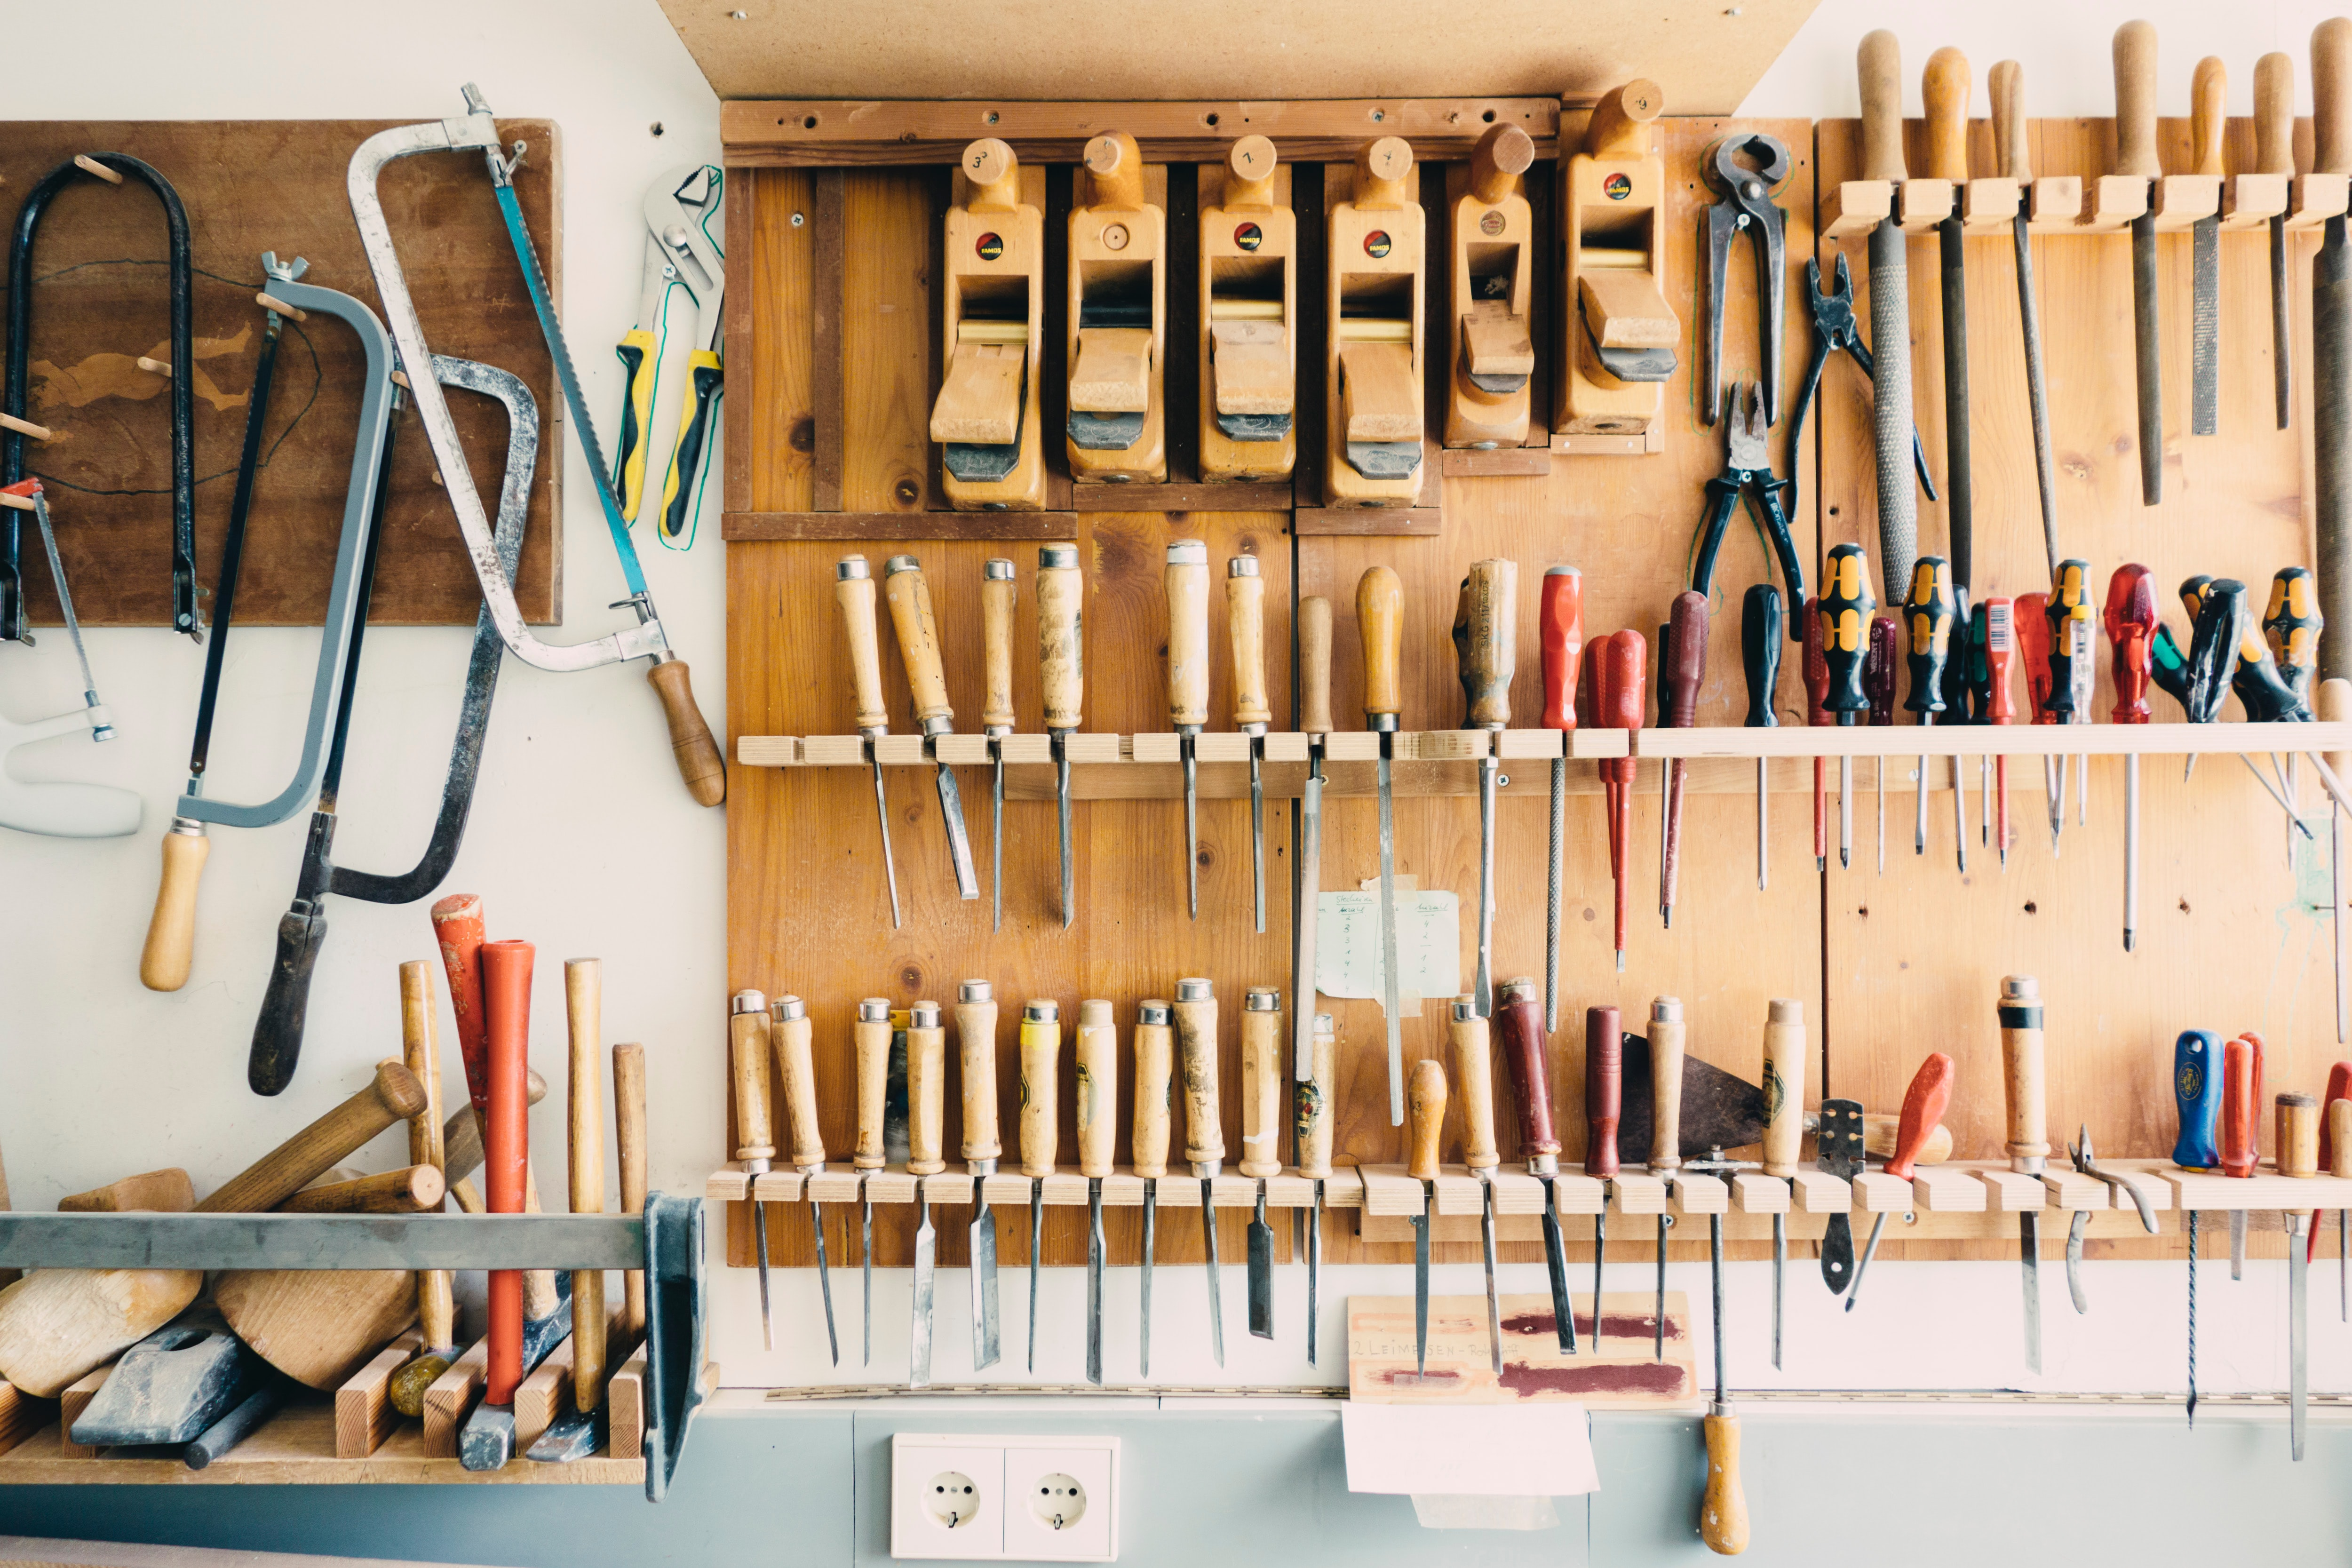 10 Coworking Tools That Will Help You Run Your Space